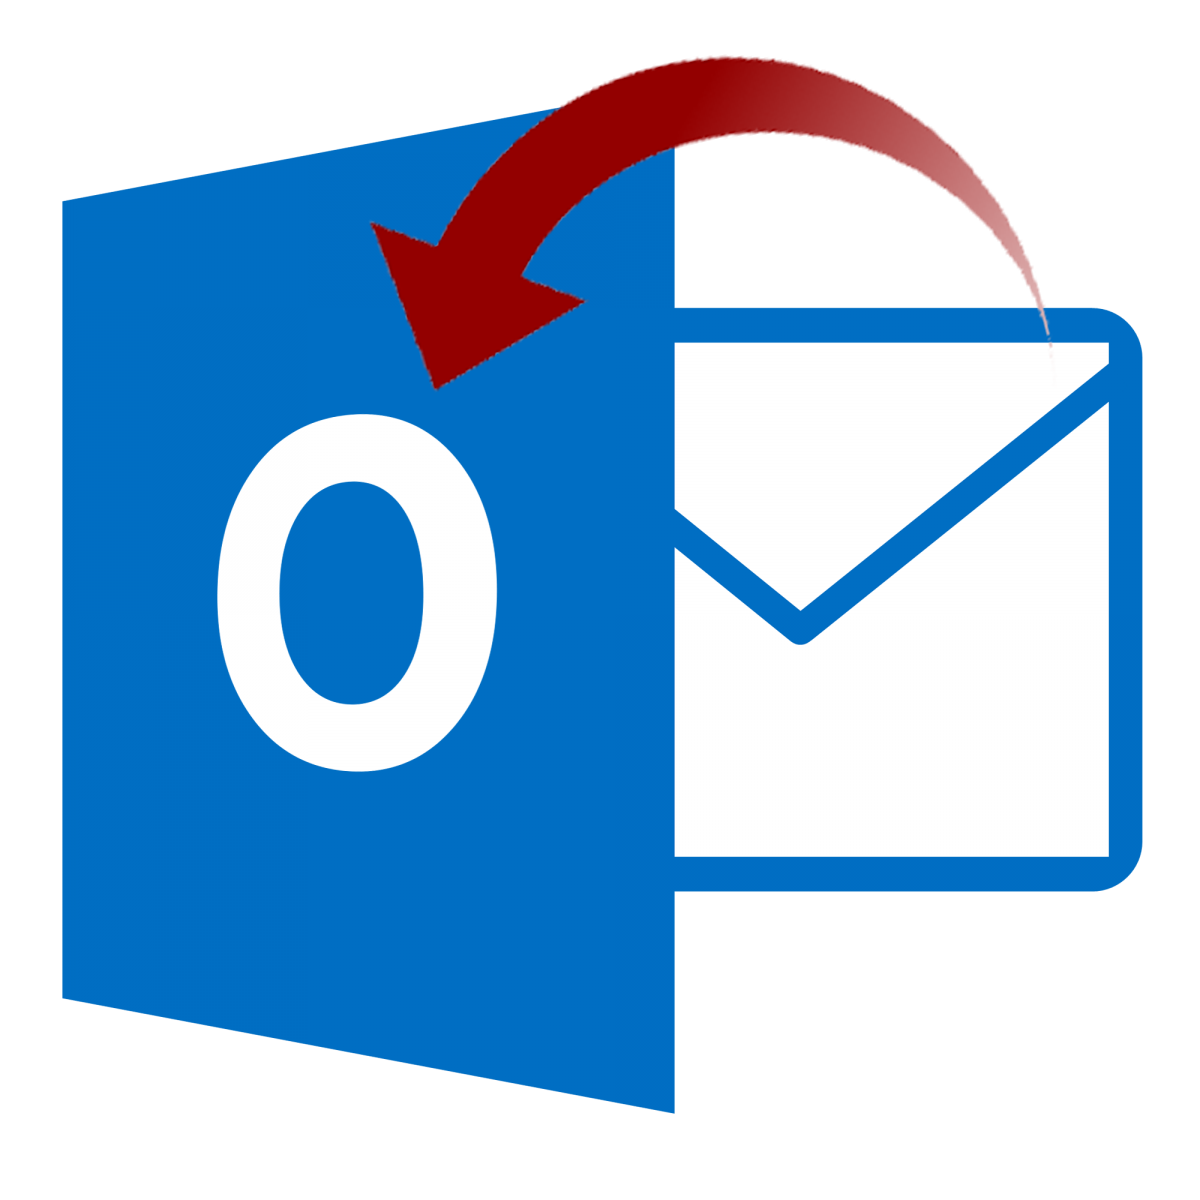 Email clipart blue email. Download this image as